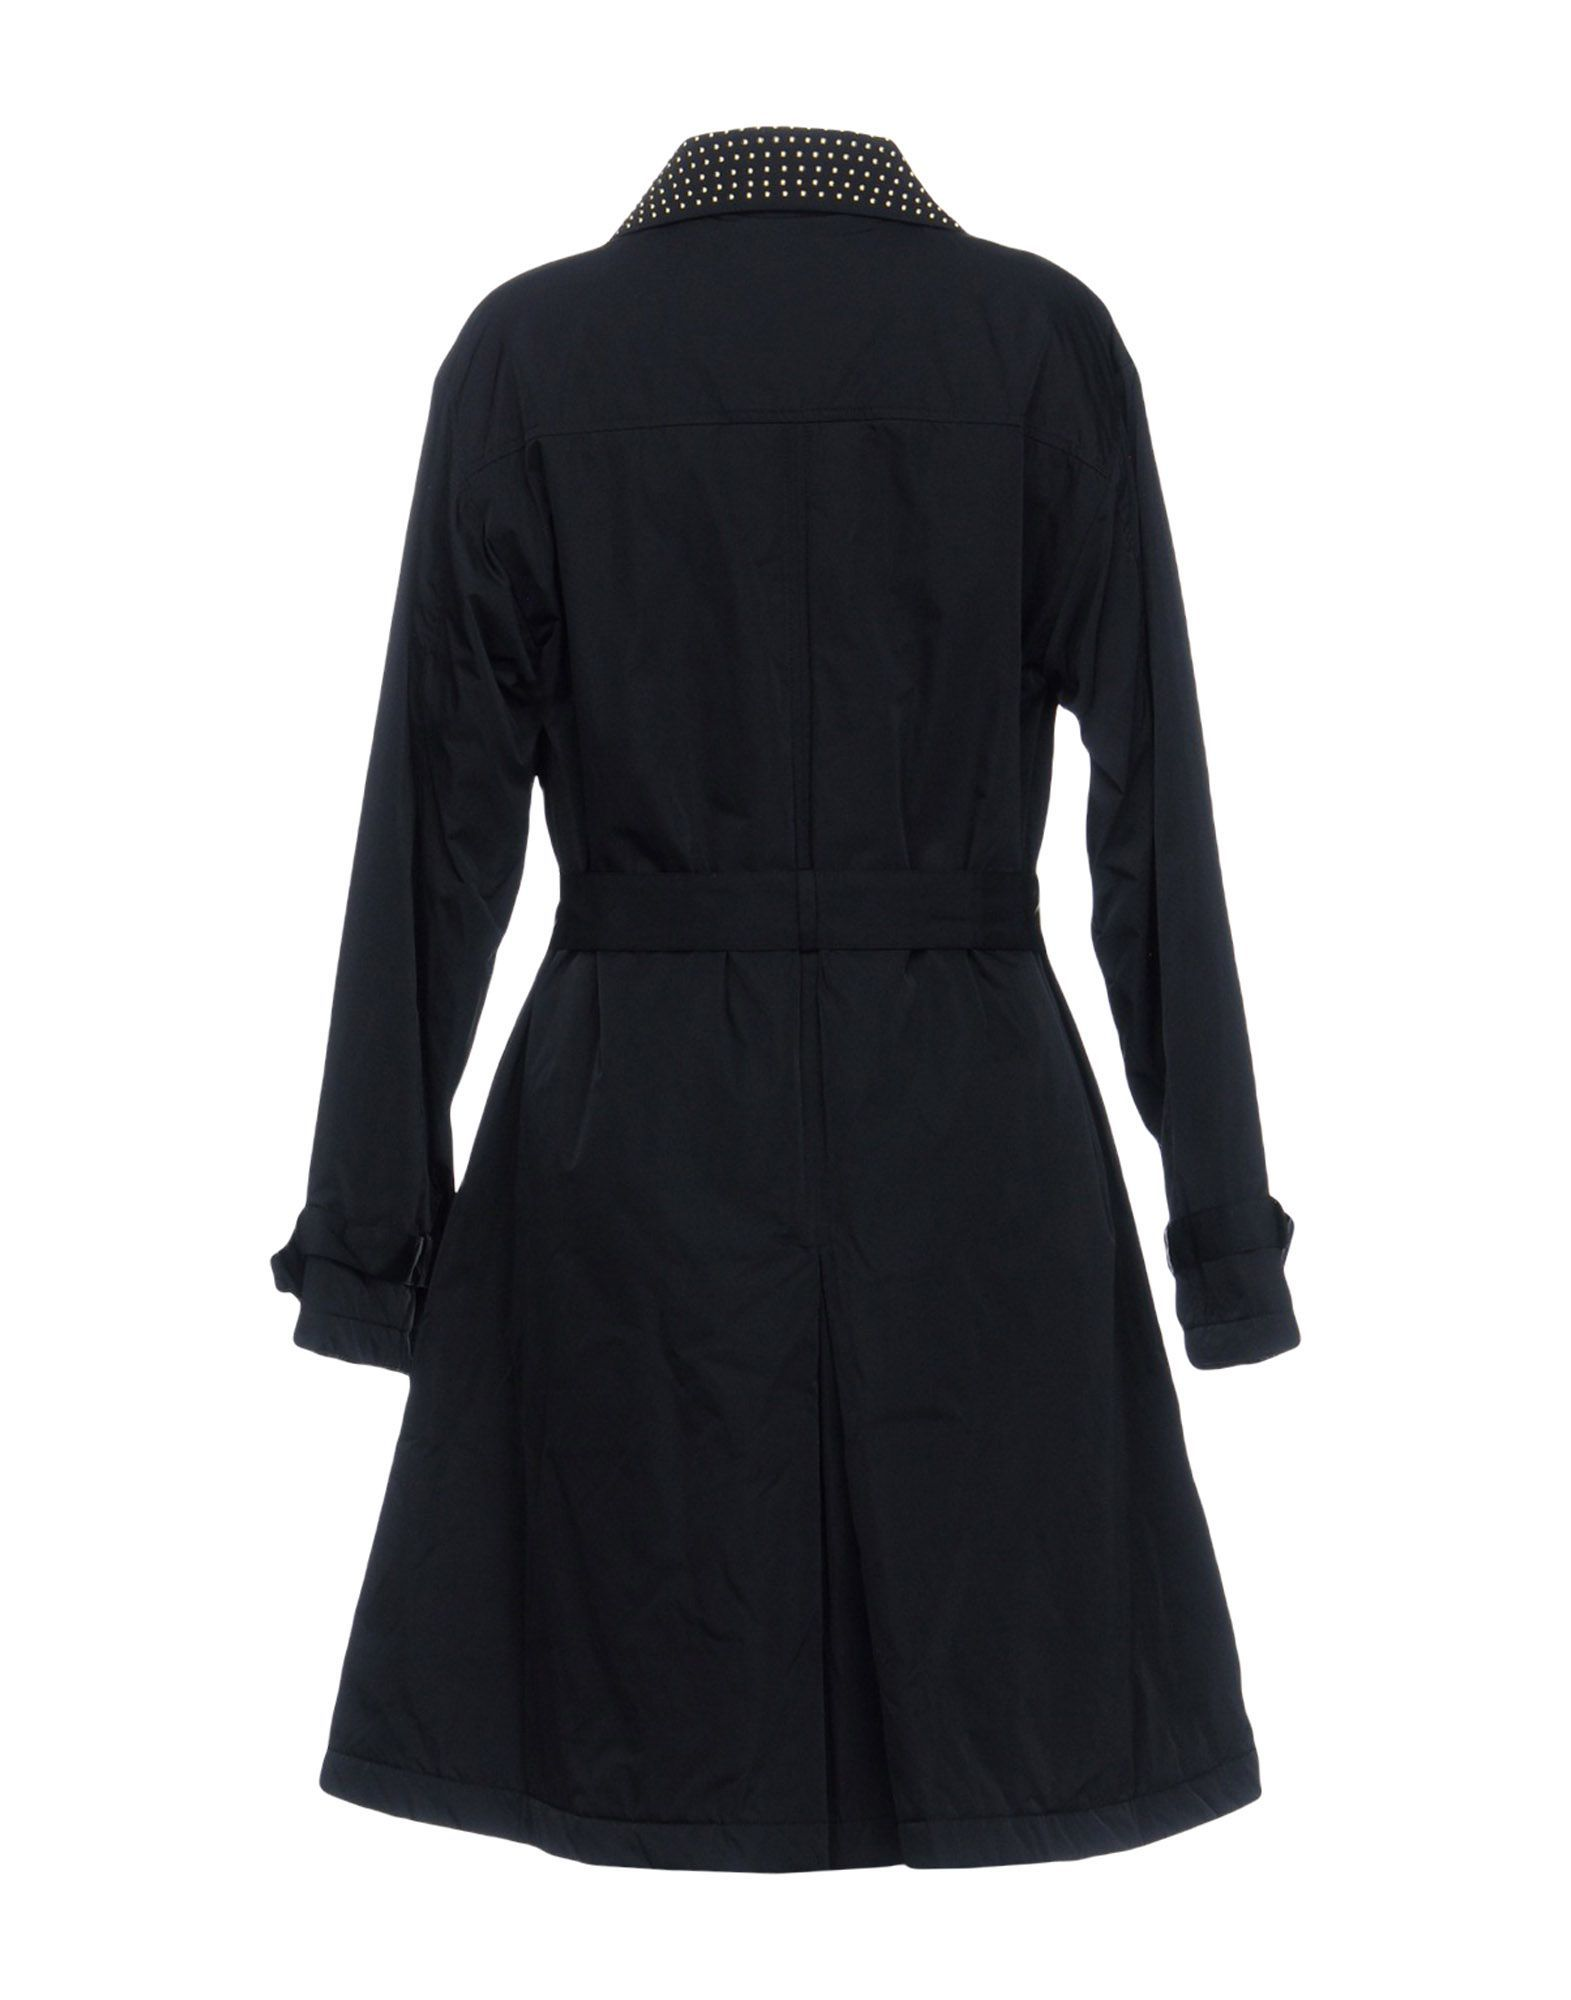 Boutique Moschino Black Single Breasted Coat